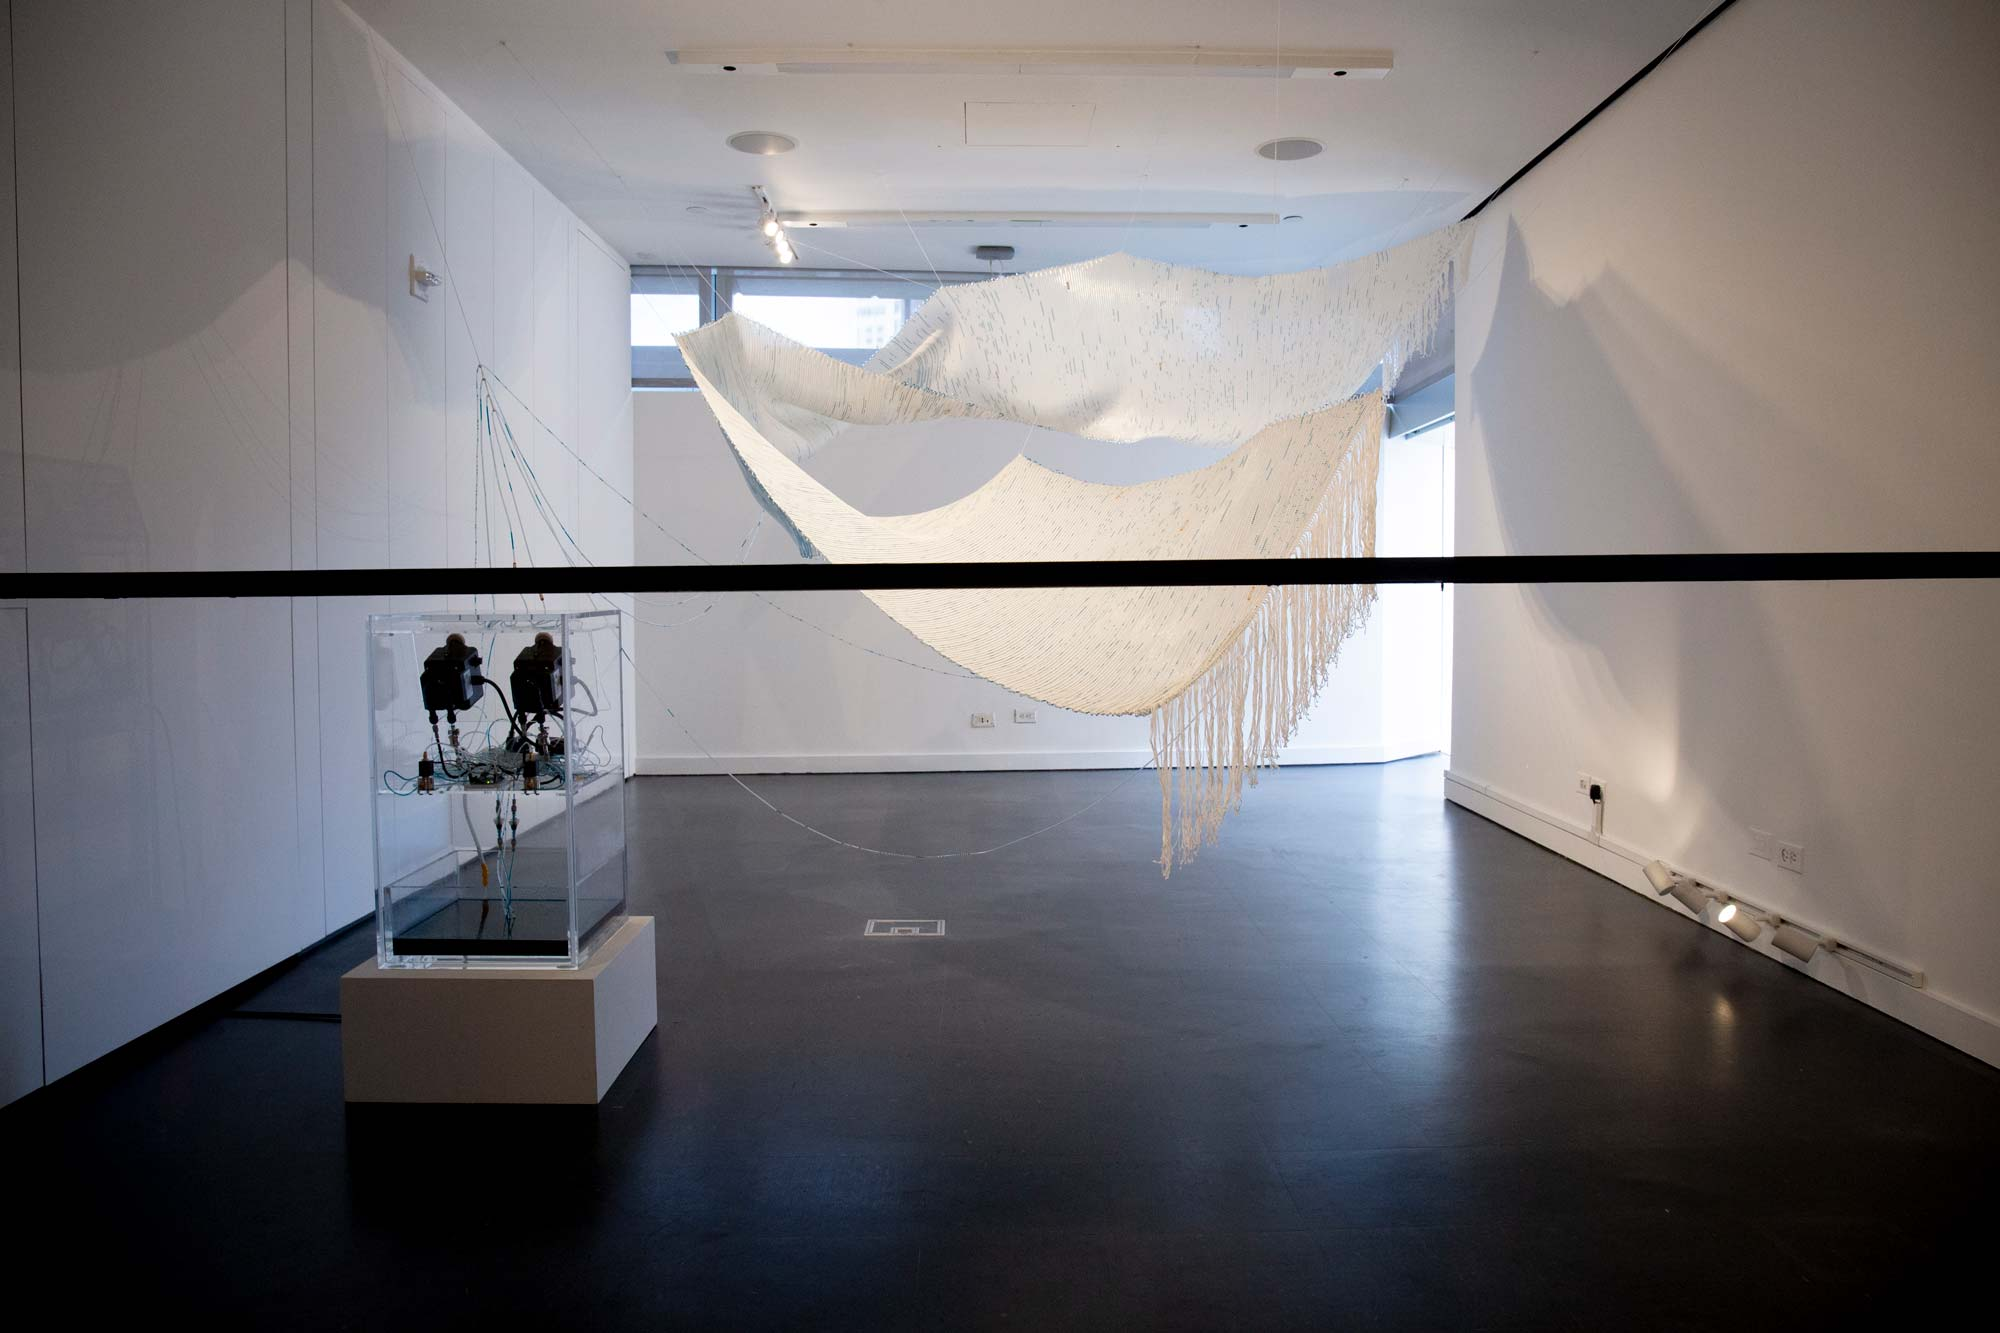 A large room with a hanging textile connected to a device that looks like a camera or projector.